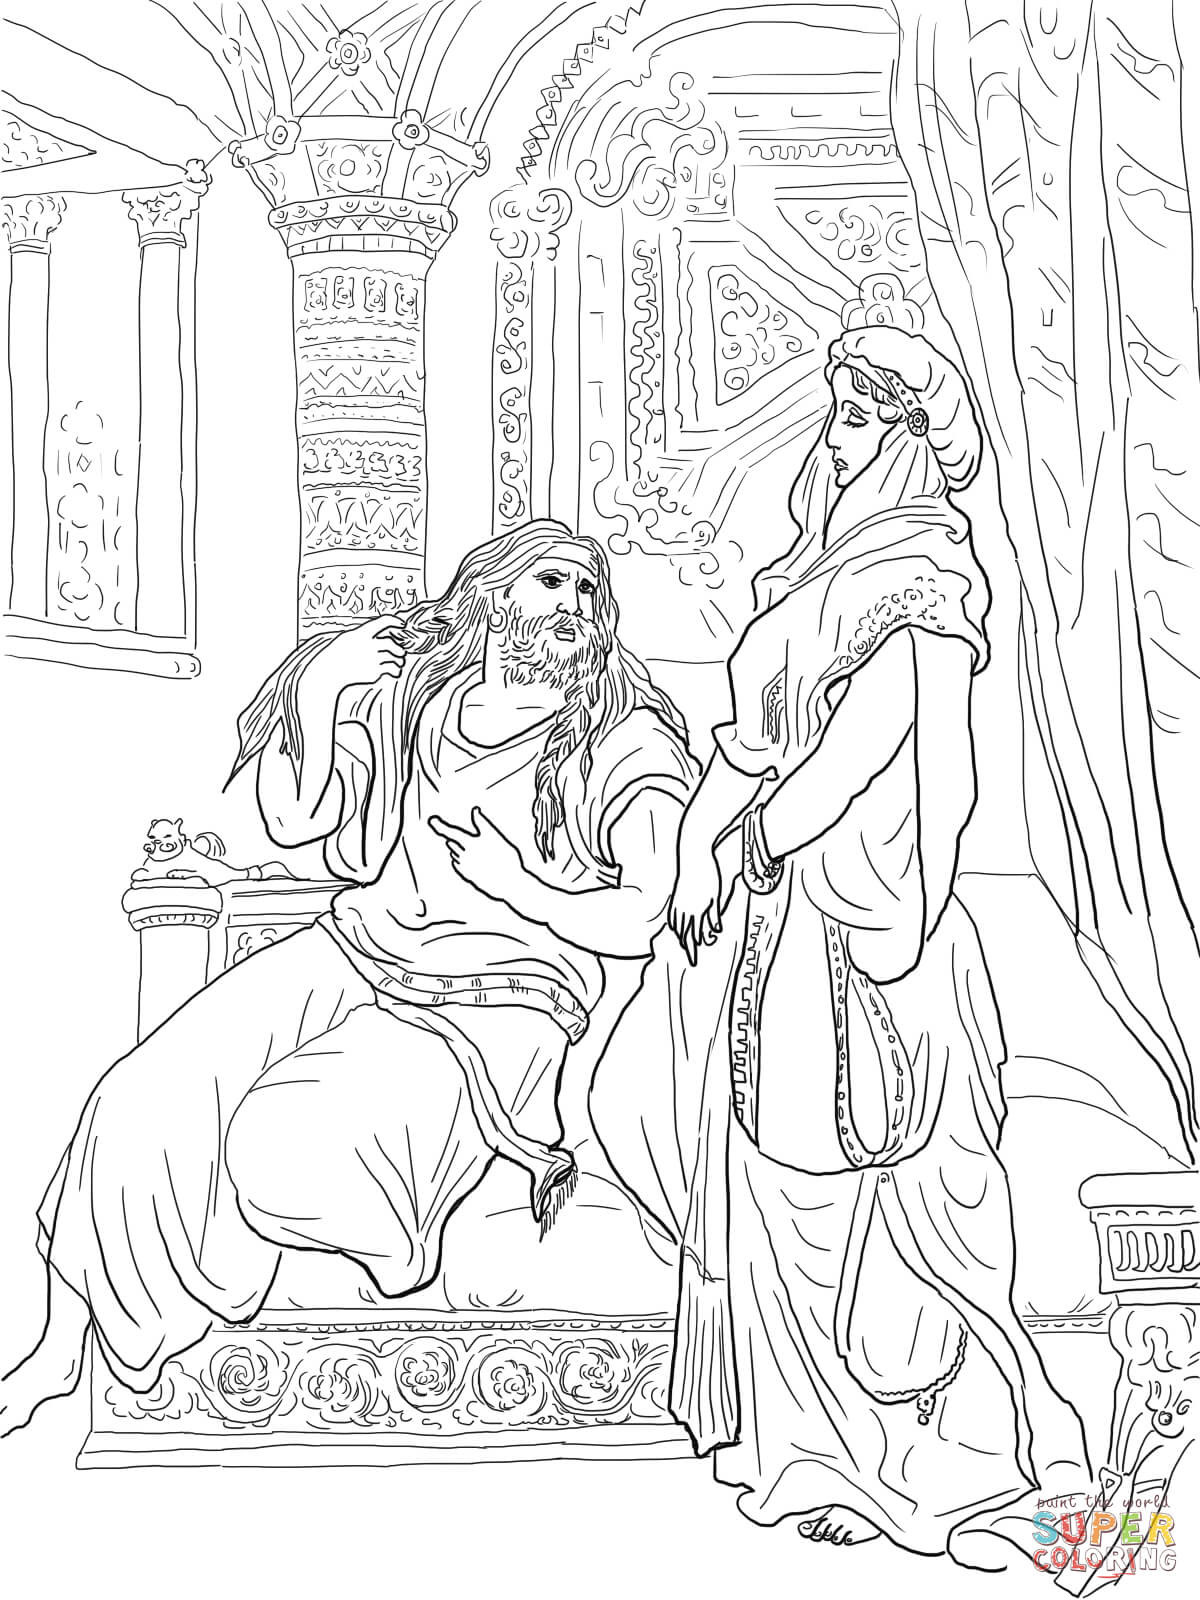 samson bible story coloring pages bible coloring page samson defeats the philistines free story coloring bible pages samson